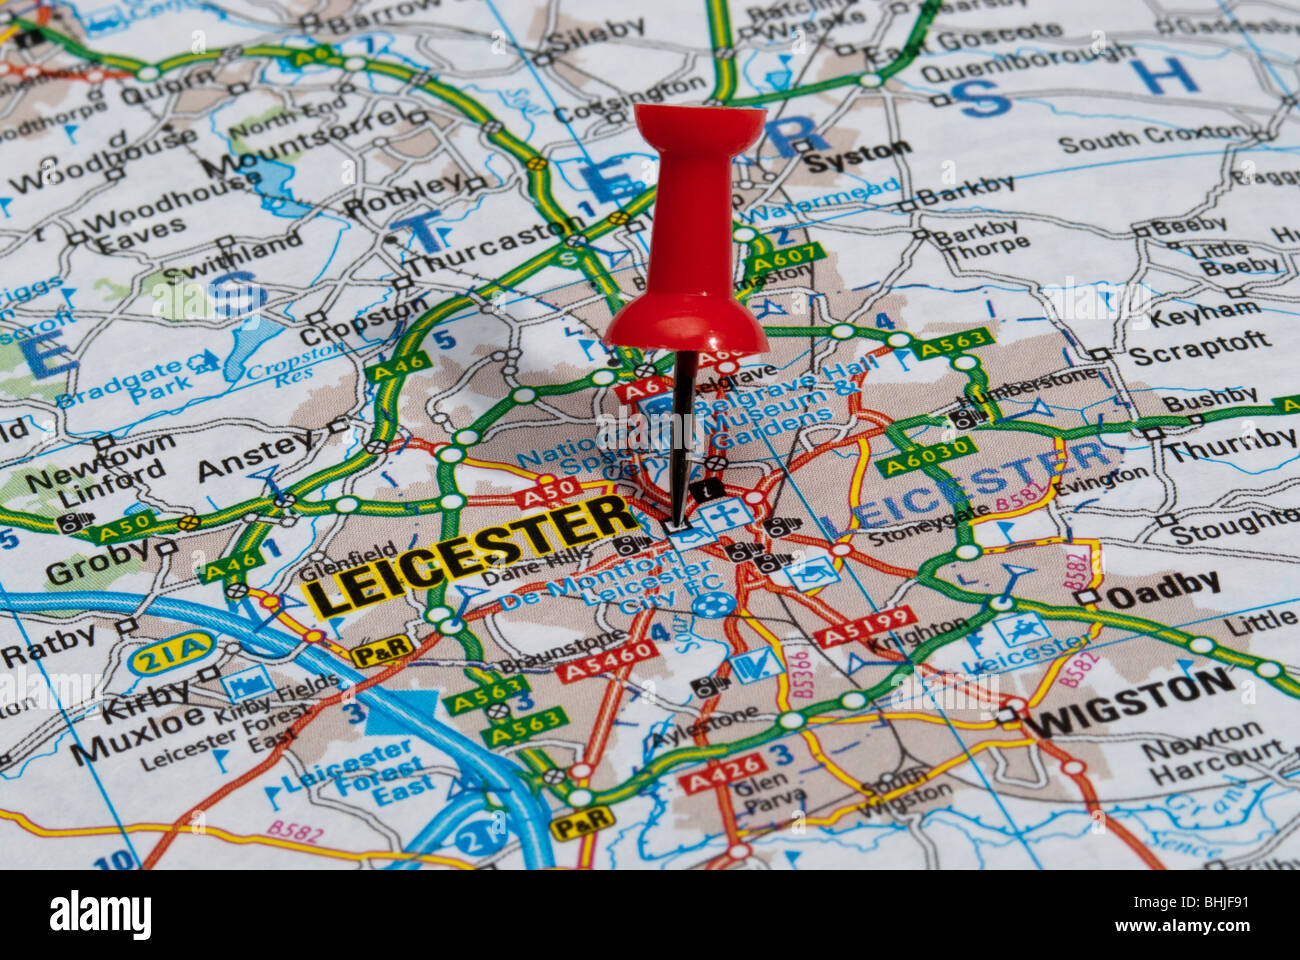 Boston Road Map red map pin in road map pointing to city of Boston Stock Photo